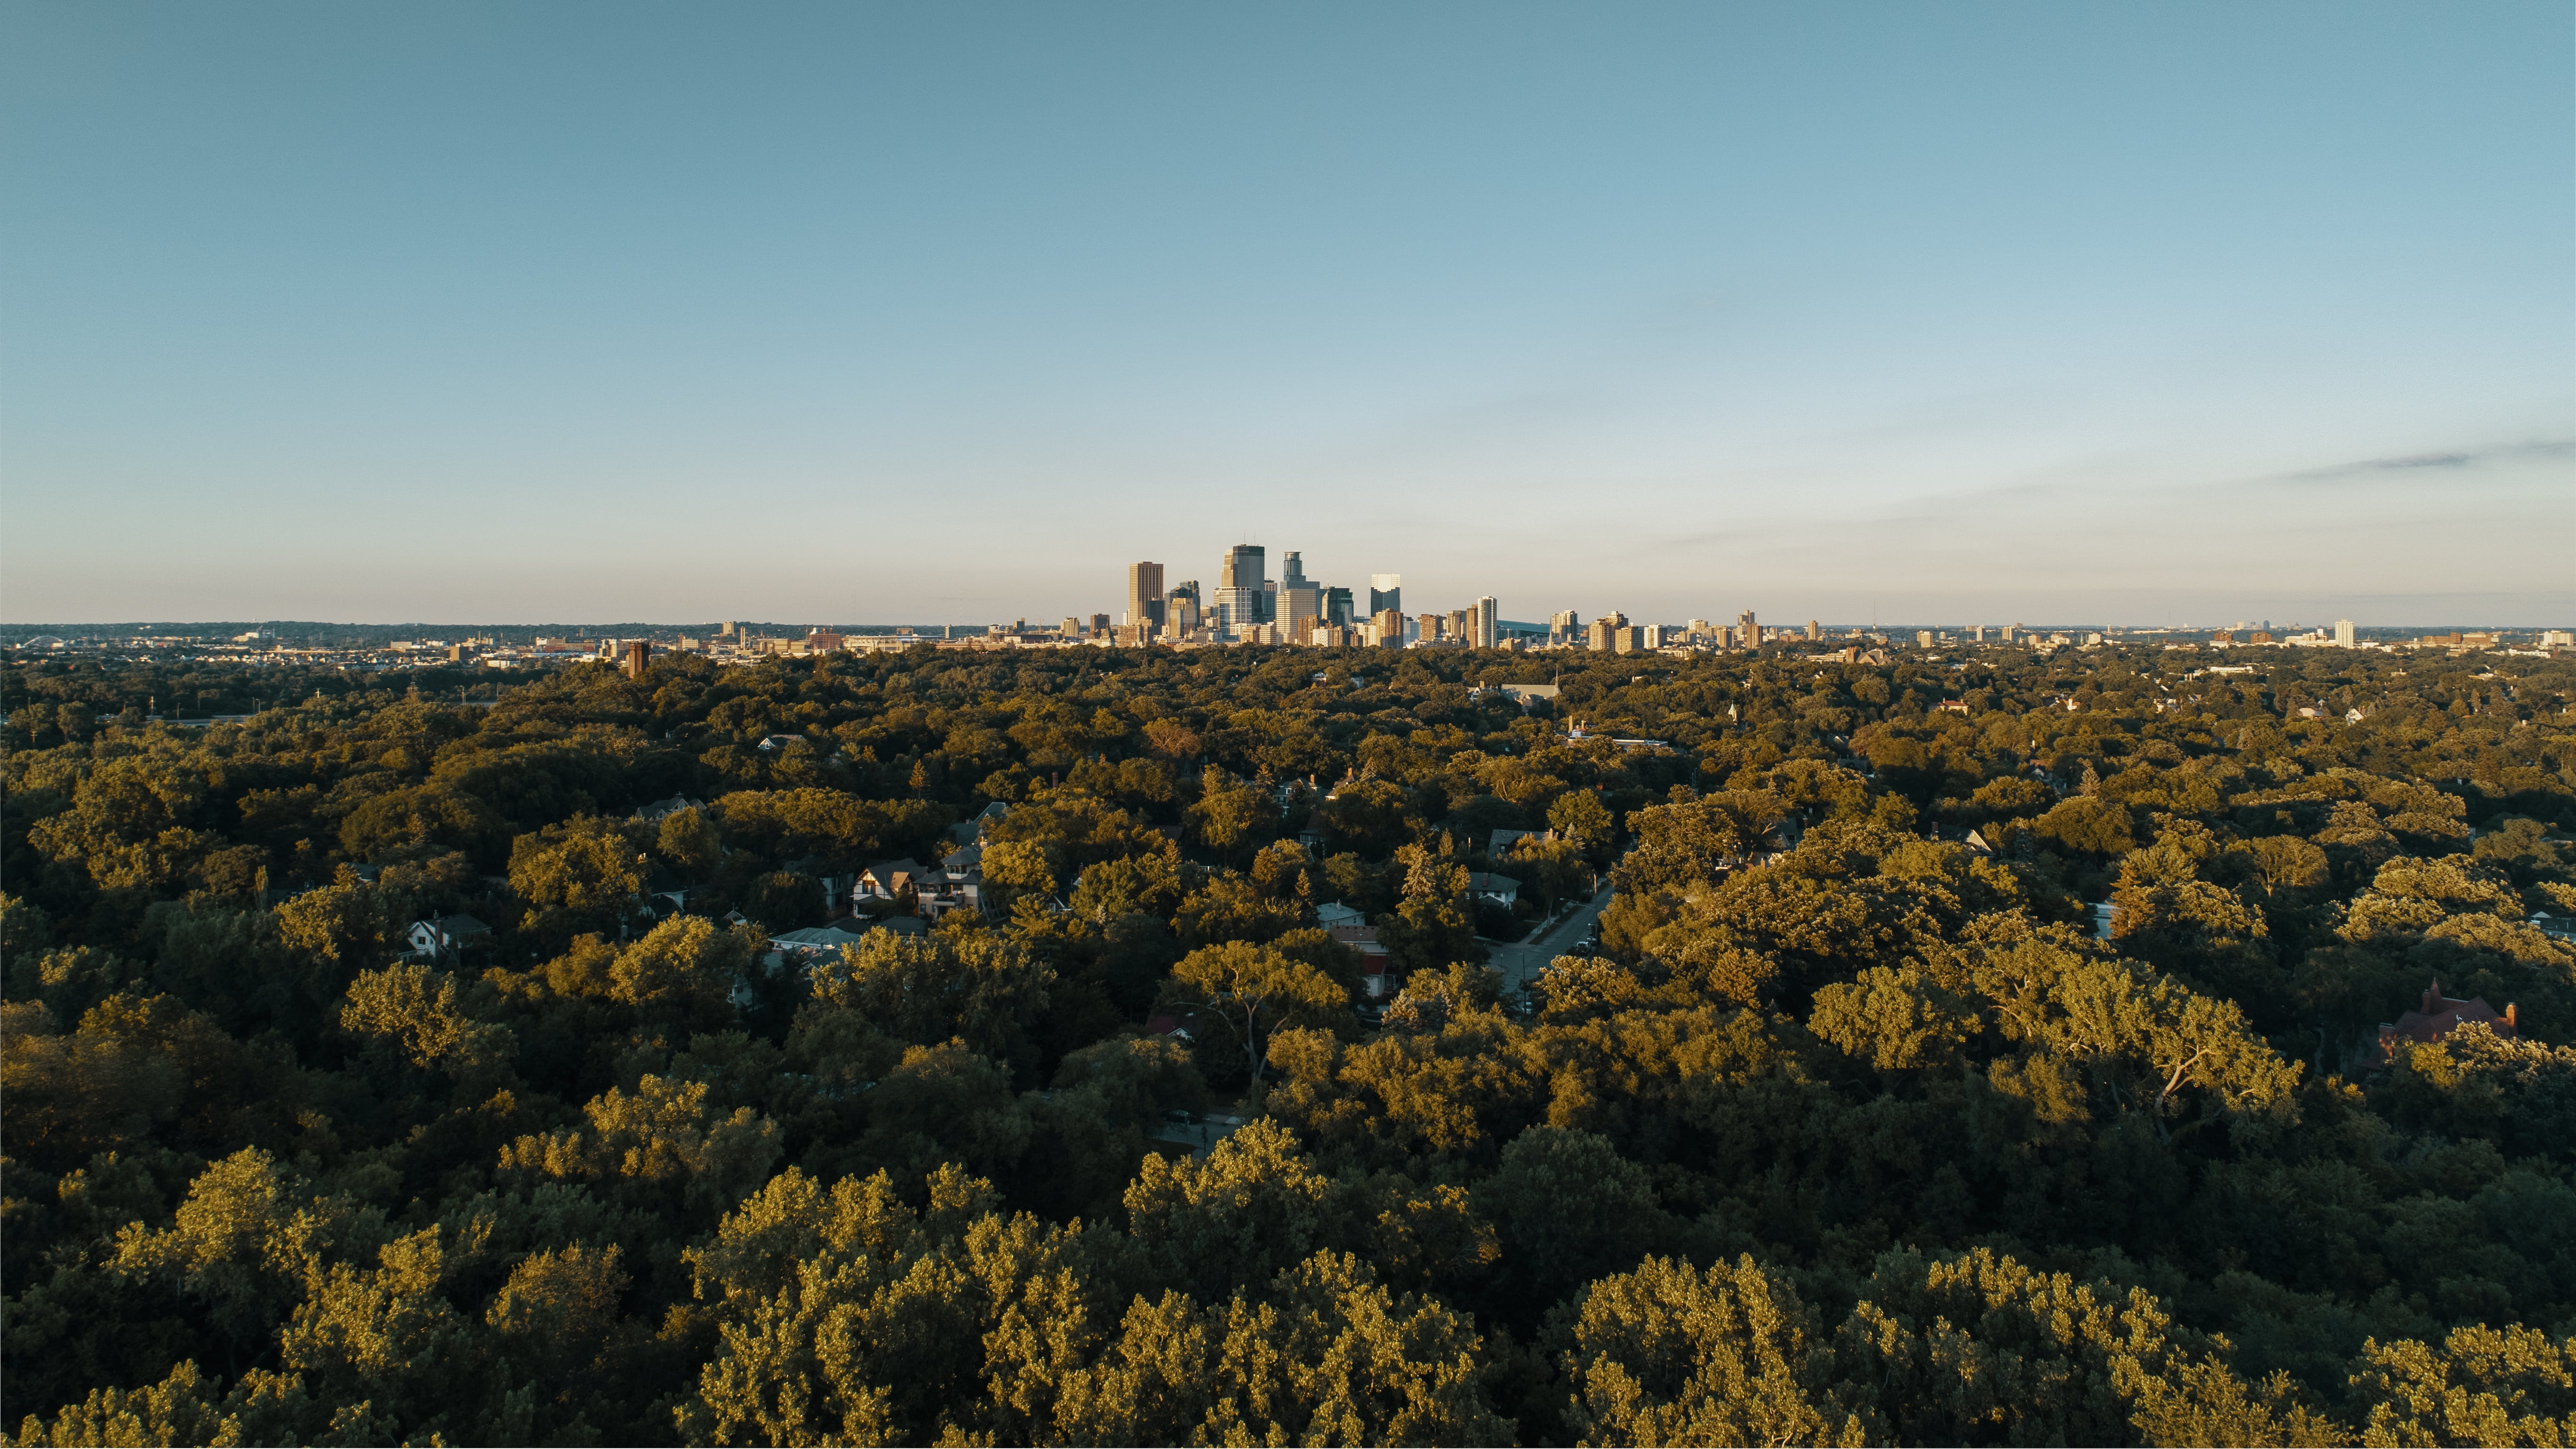 Aerial View Photography of Green Trees